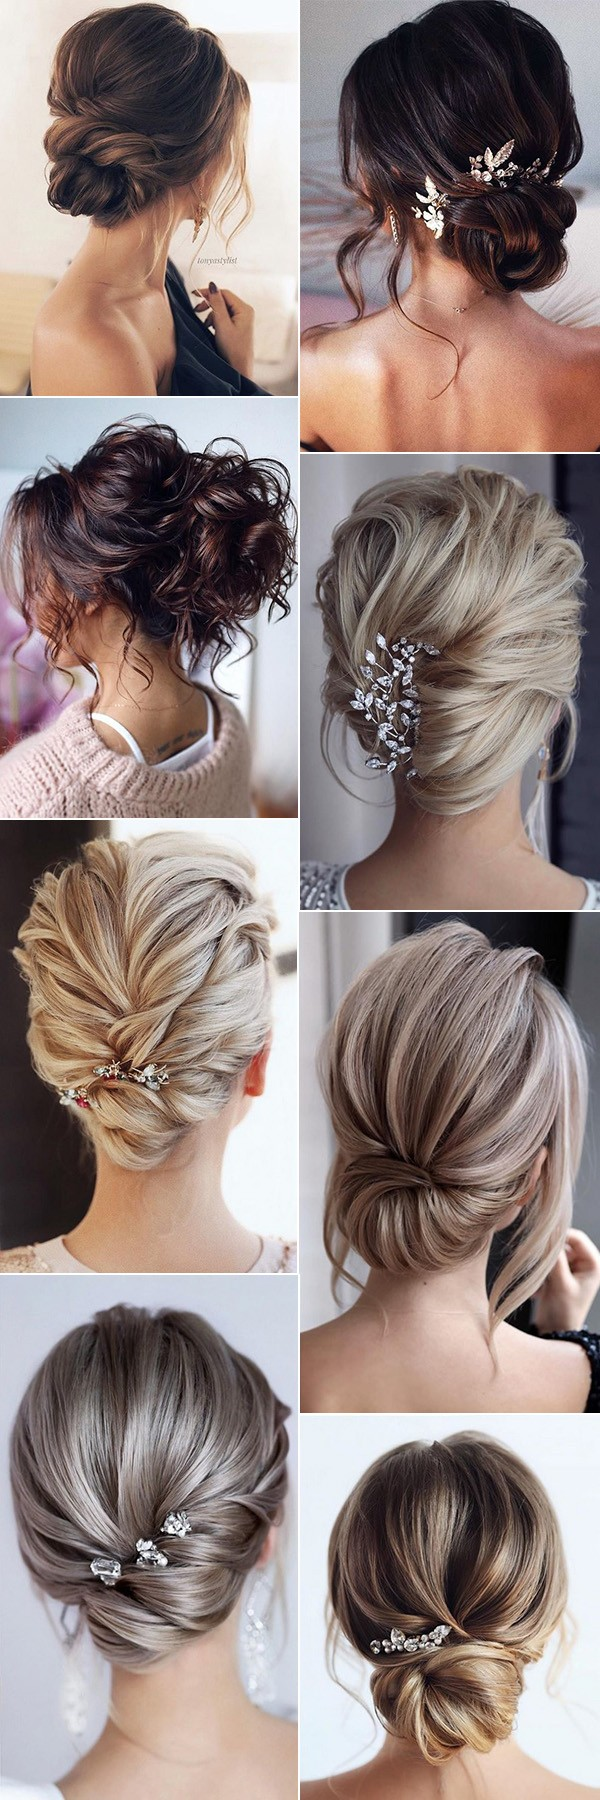 updo wedding hairstles for medium length hair